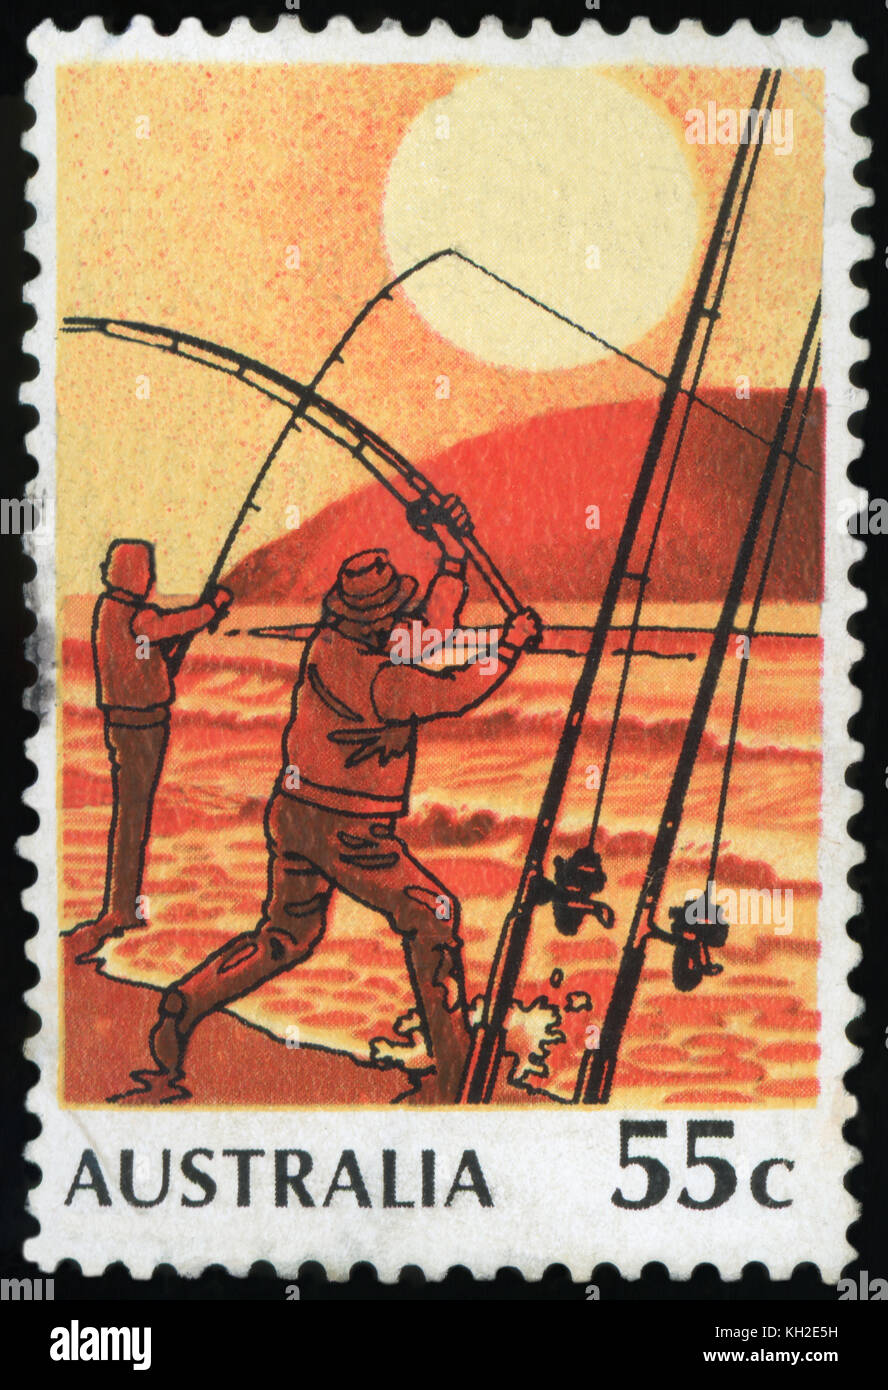 AUSTRALIA - CIRCA 1979:A Cancelled postage stamp from Australia illustrating Fishing in Australia, issued in 1979. - Stock Image